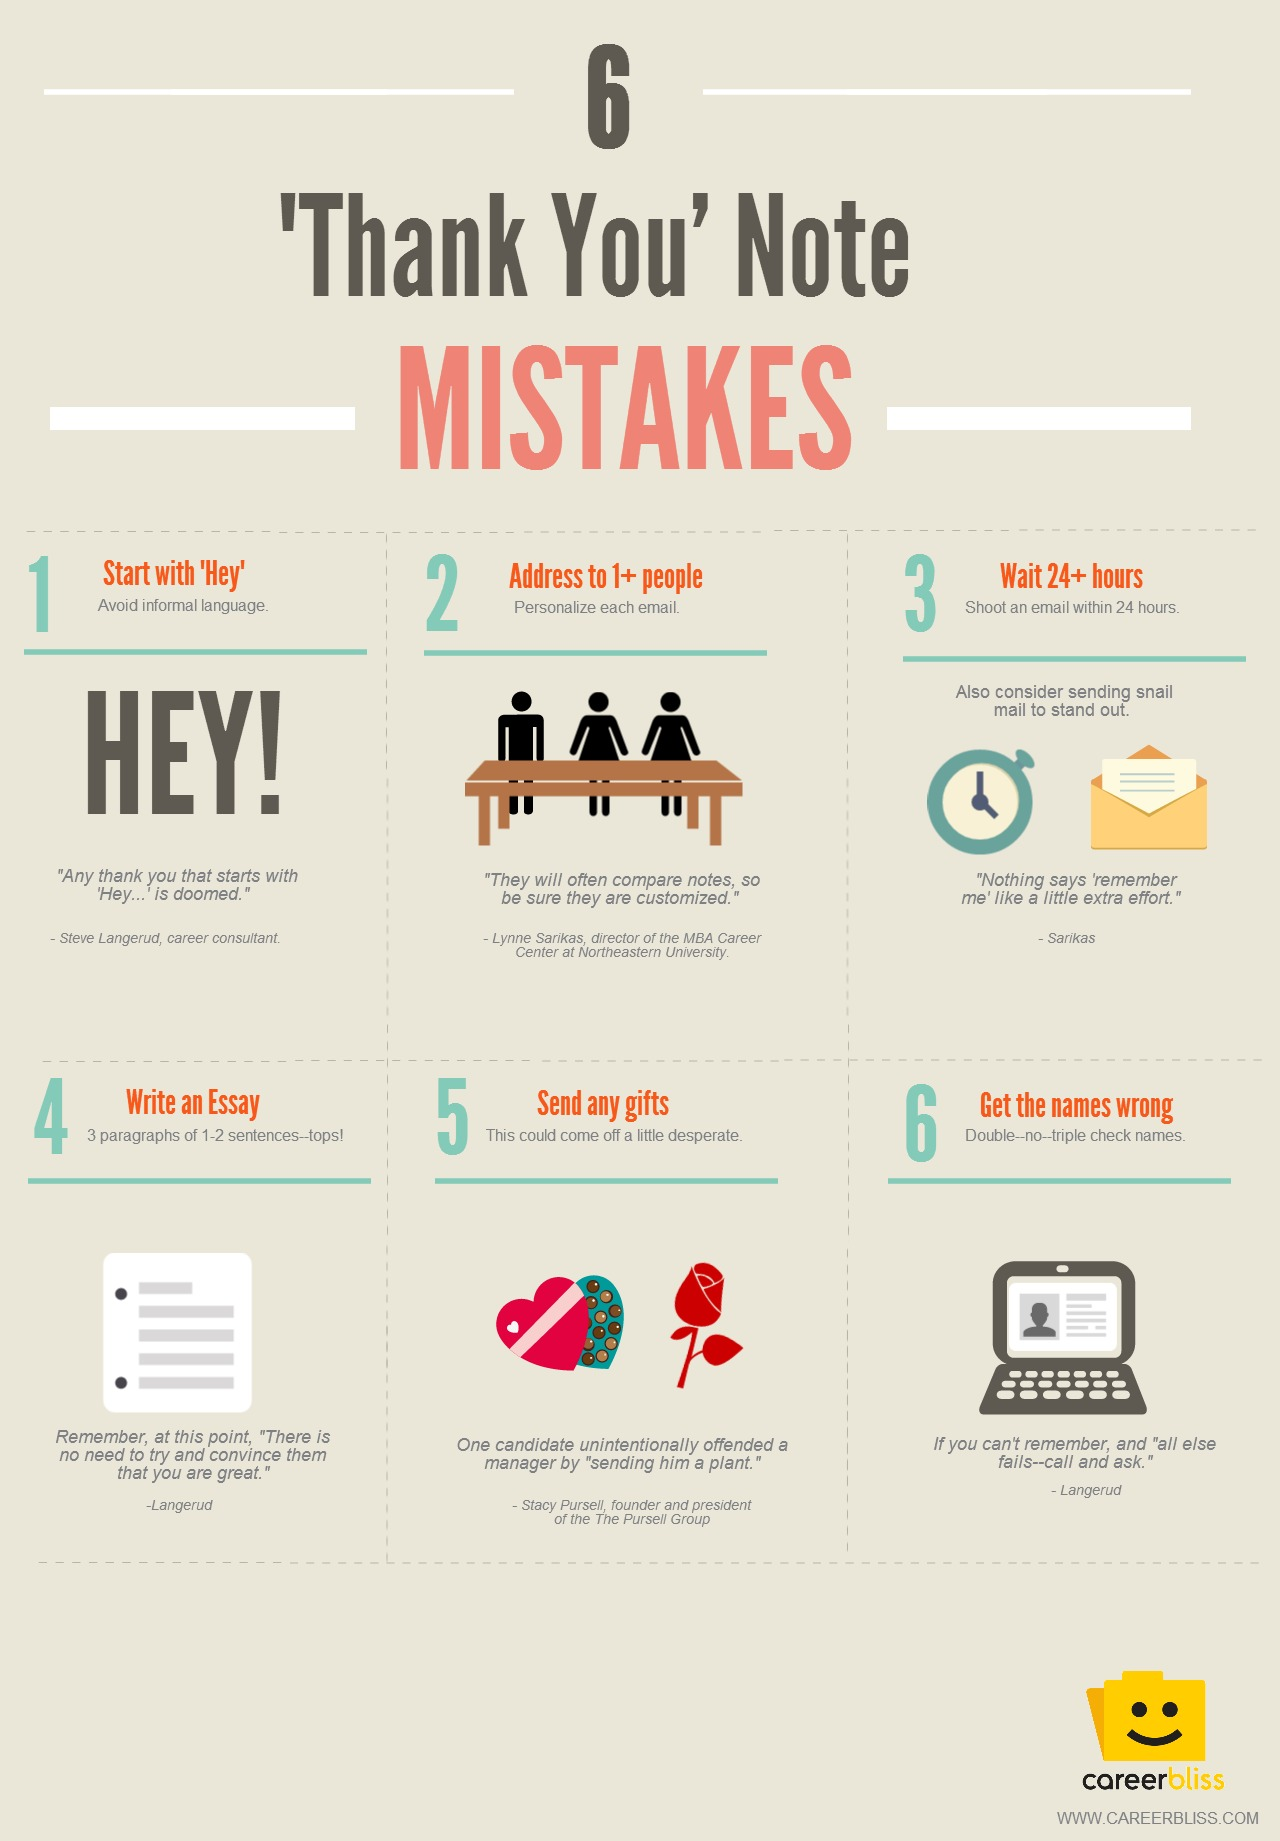 6 'Thank You' Note Mistakes Infographic CareerBliss